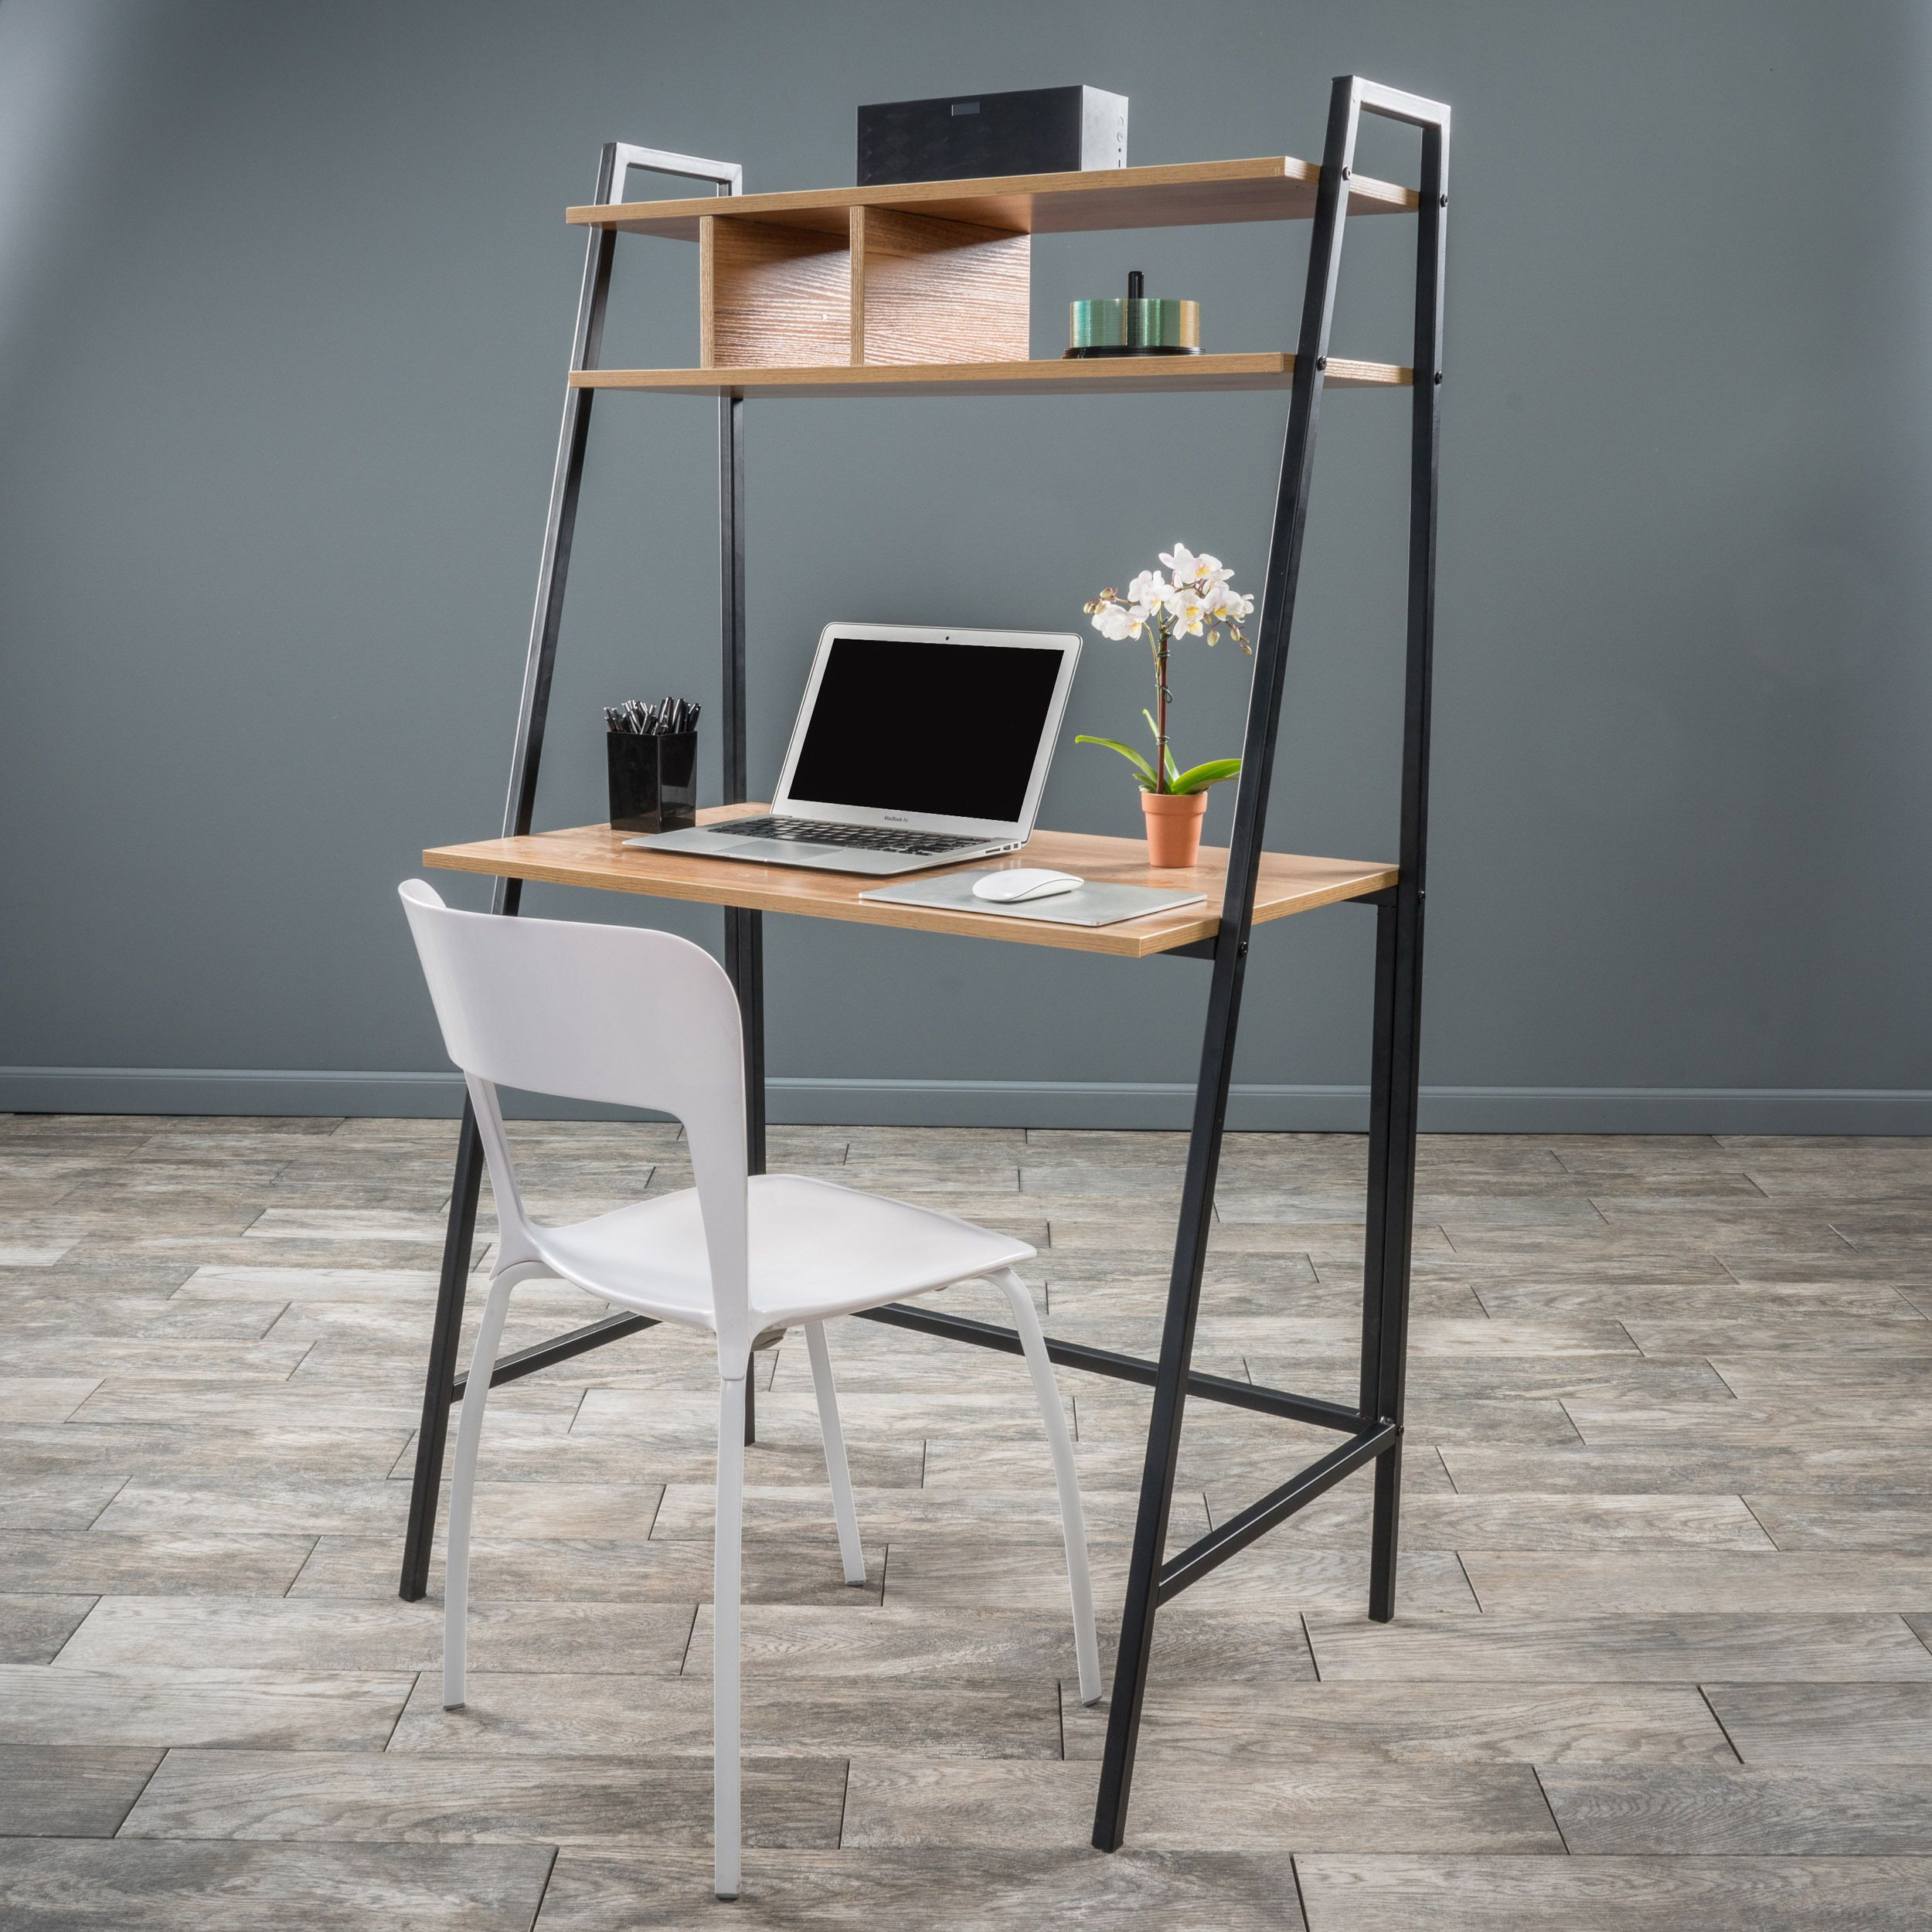 Make the most out of a small work space with the christopher knight